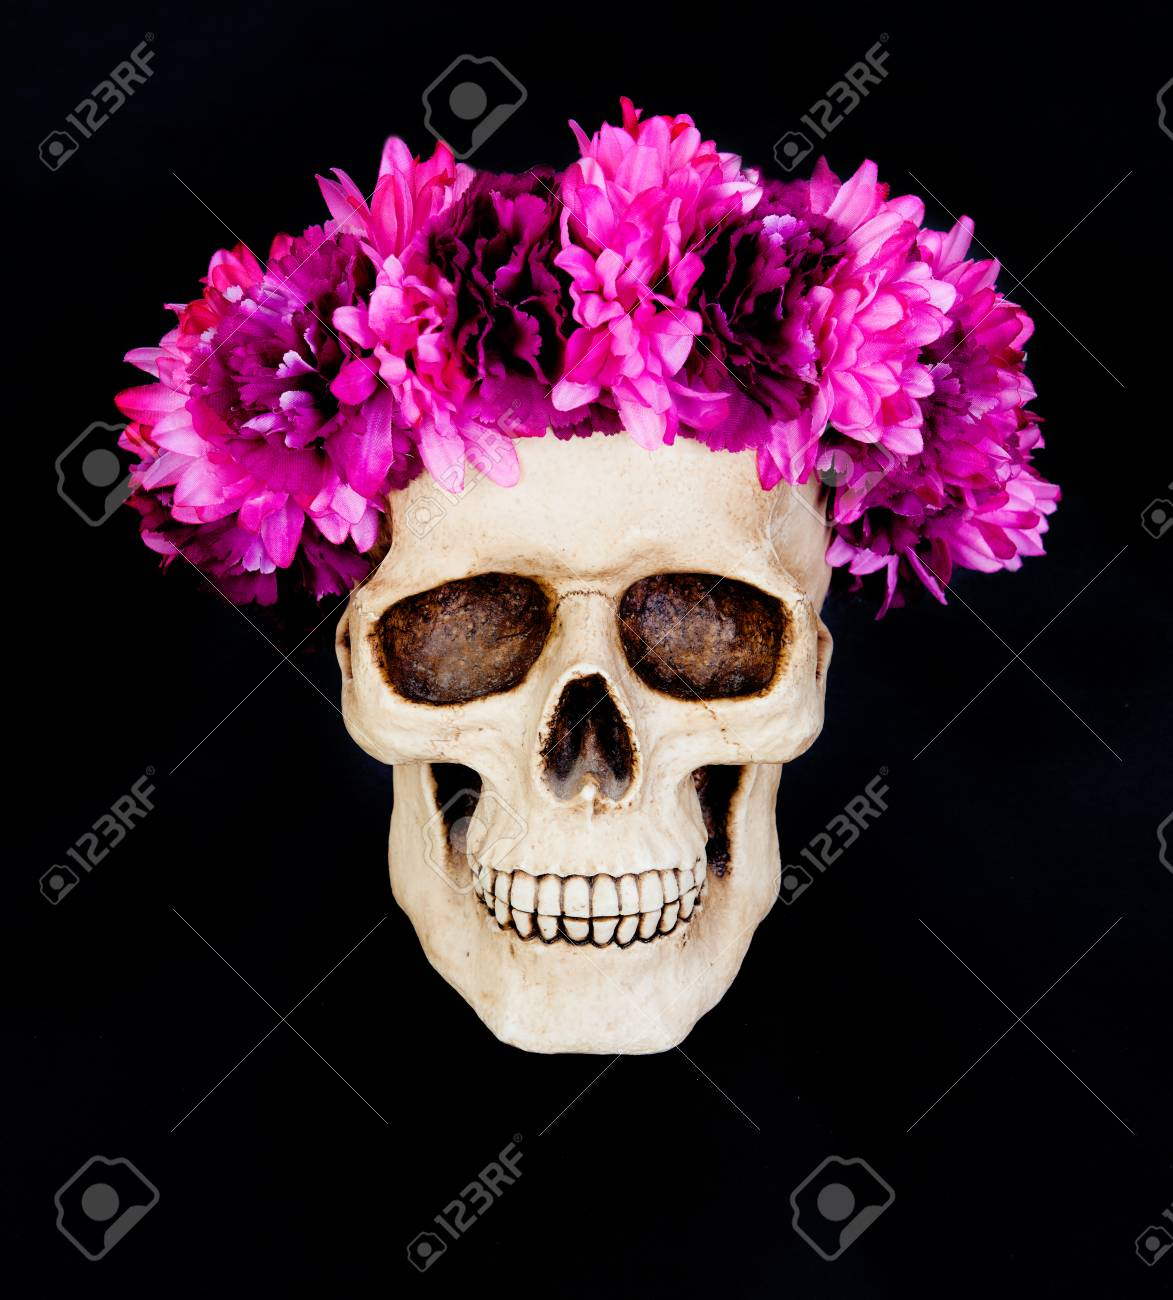 Skull with a wreath of pink flower isolated on a black background skull with a wreath of pink flower isolated on a black background stock photo 87547585 mightylinksfo